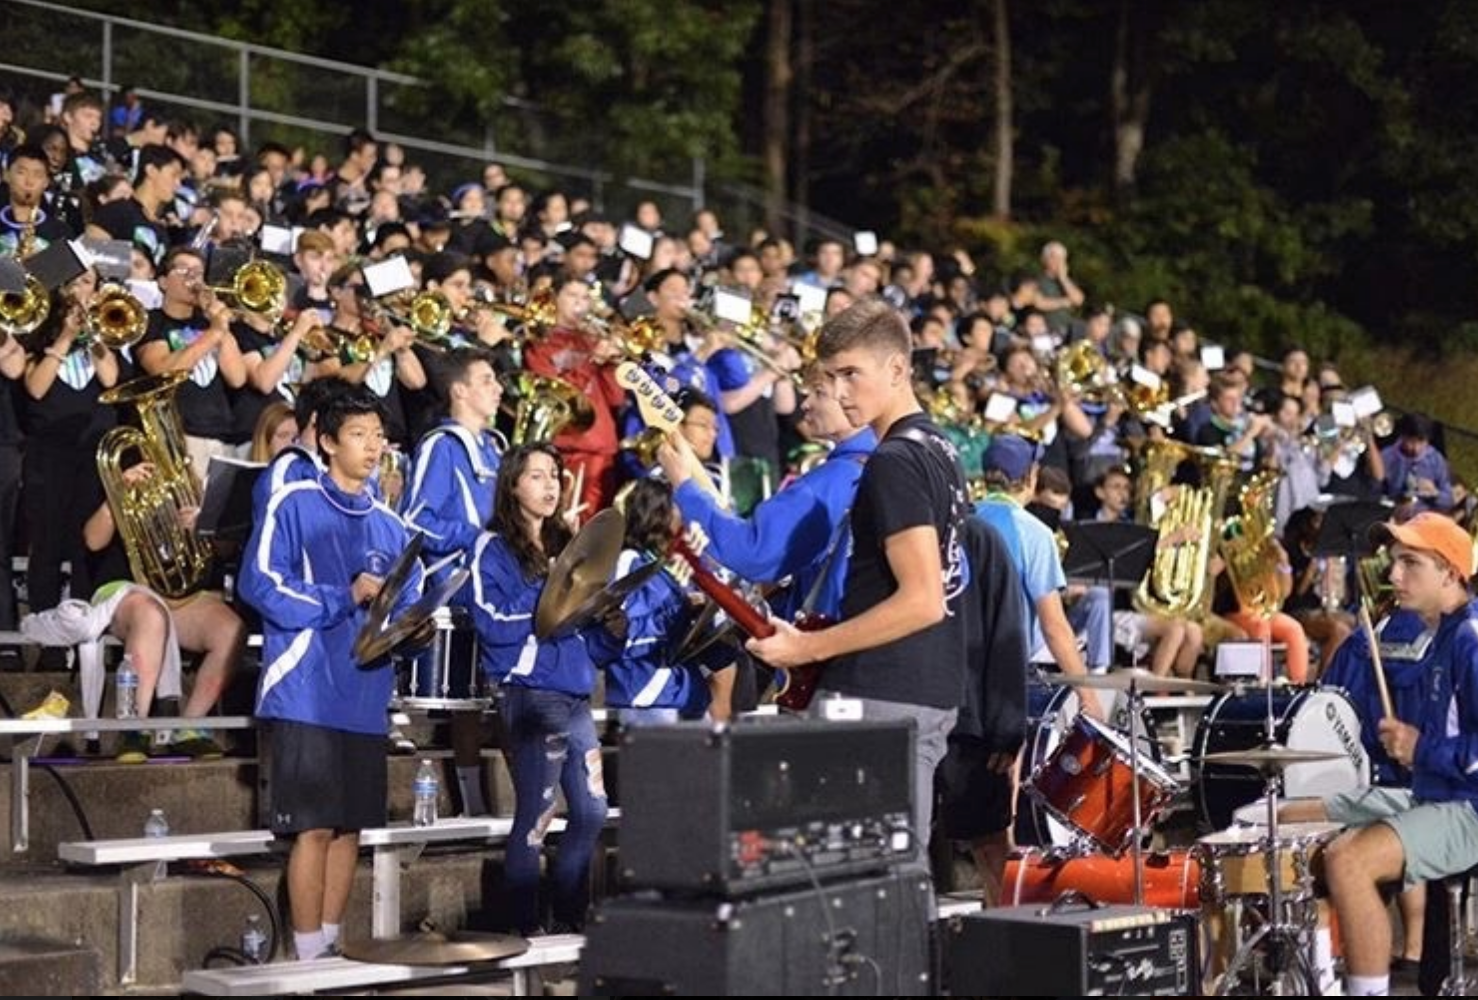 WCHS home football games would not be complete without Pep Band cheering on our fellow Bulldogs.